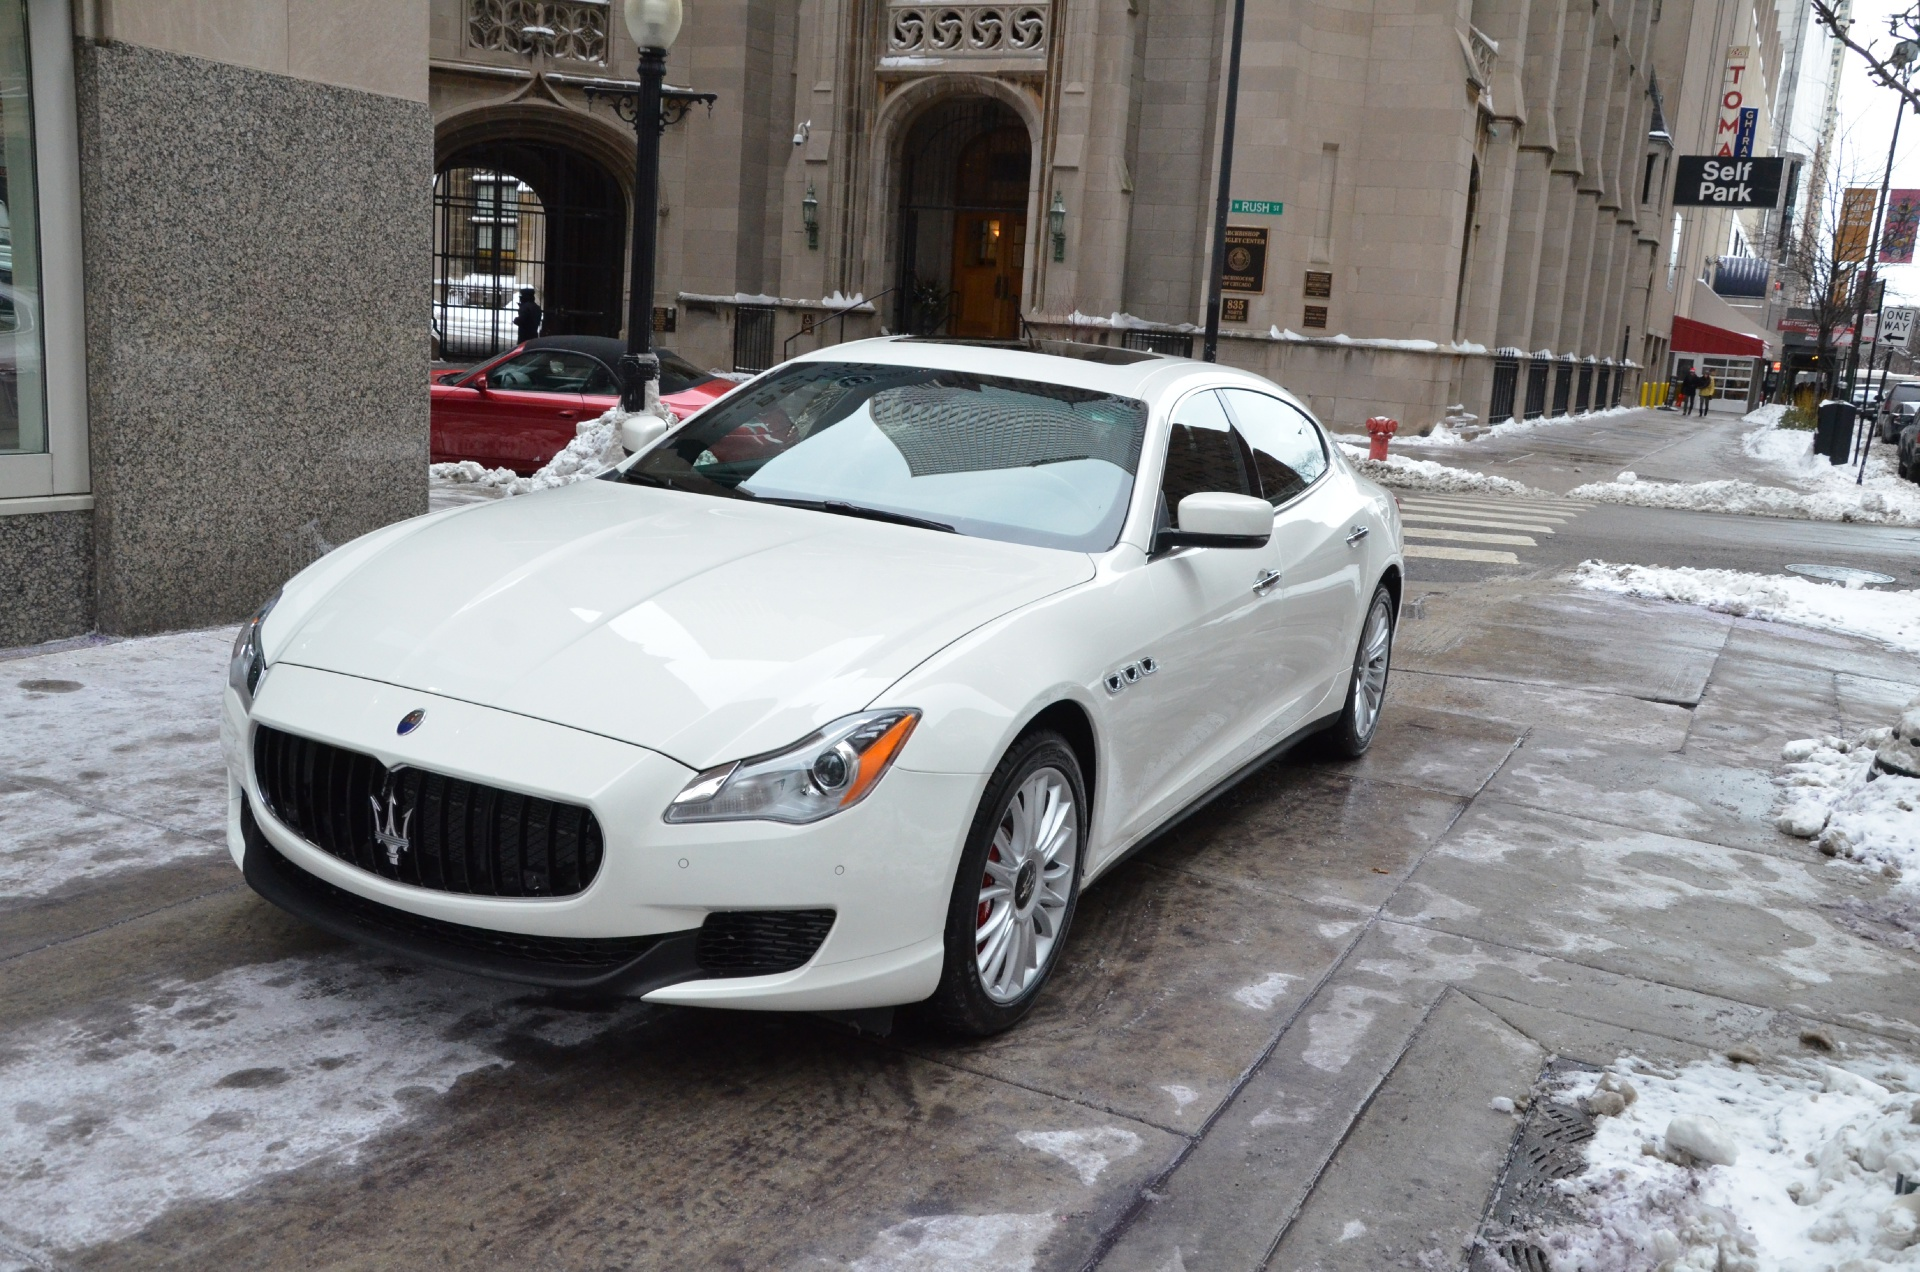 2014 maserati quattroporte sq4 s q4 stock m256 for sale near chicago il il maserati dealer. Black Bedroom Furniture Sets. Home Design Ideas